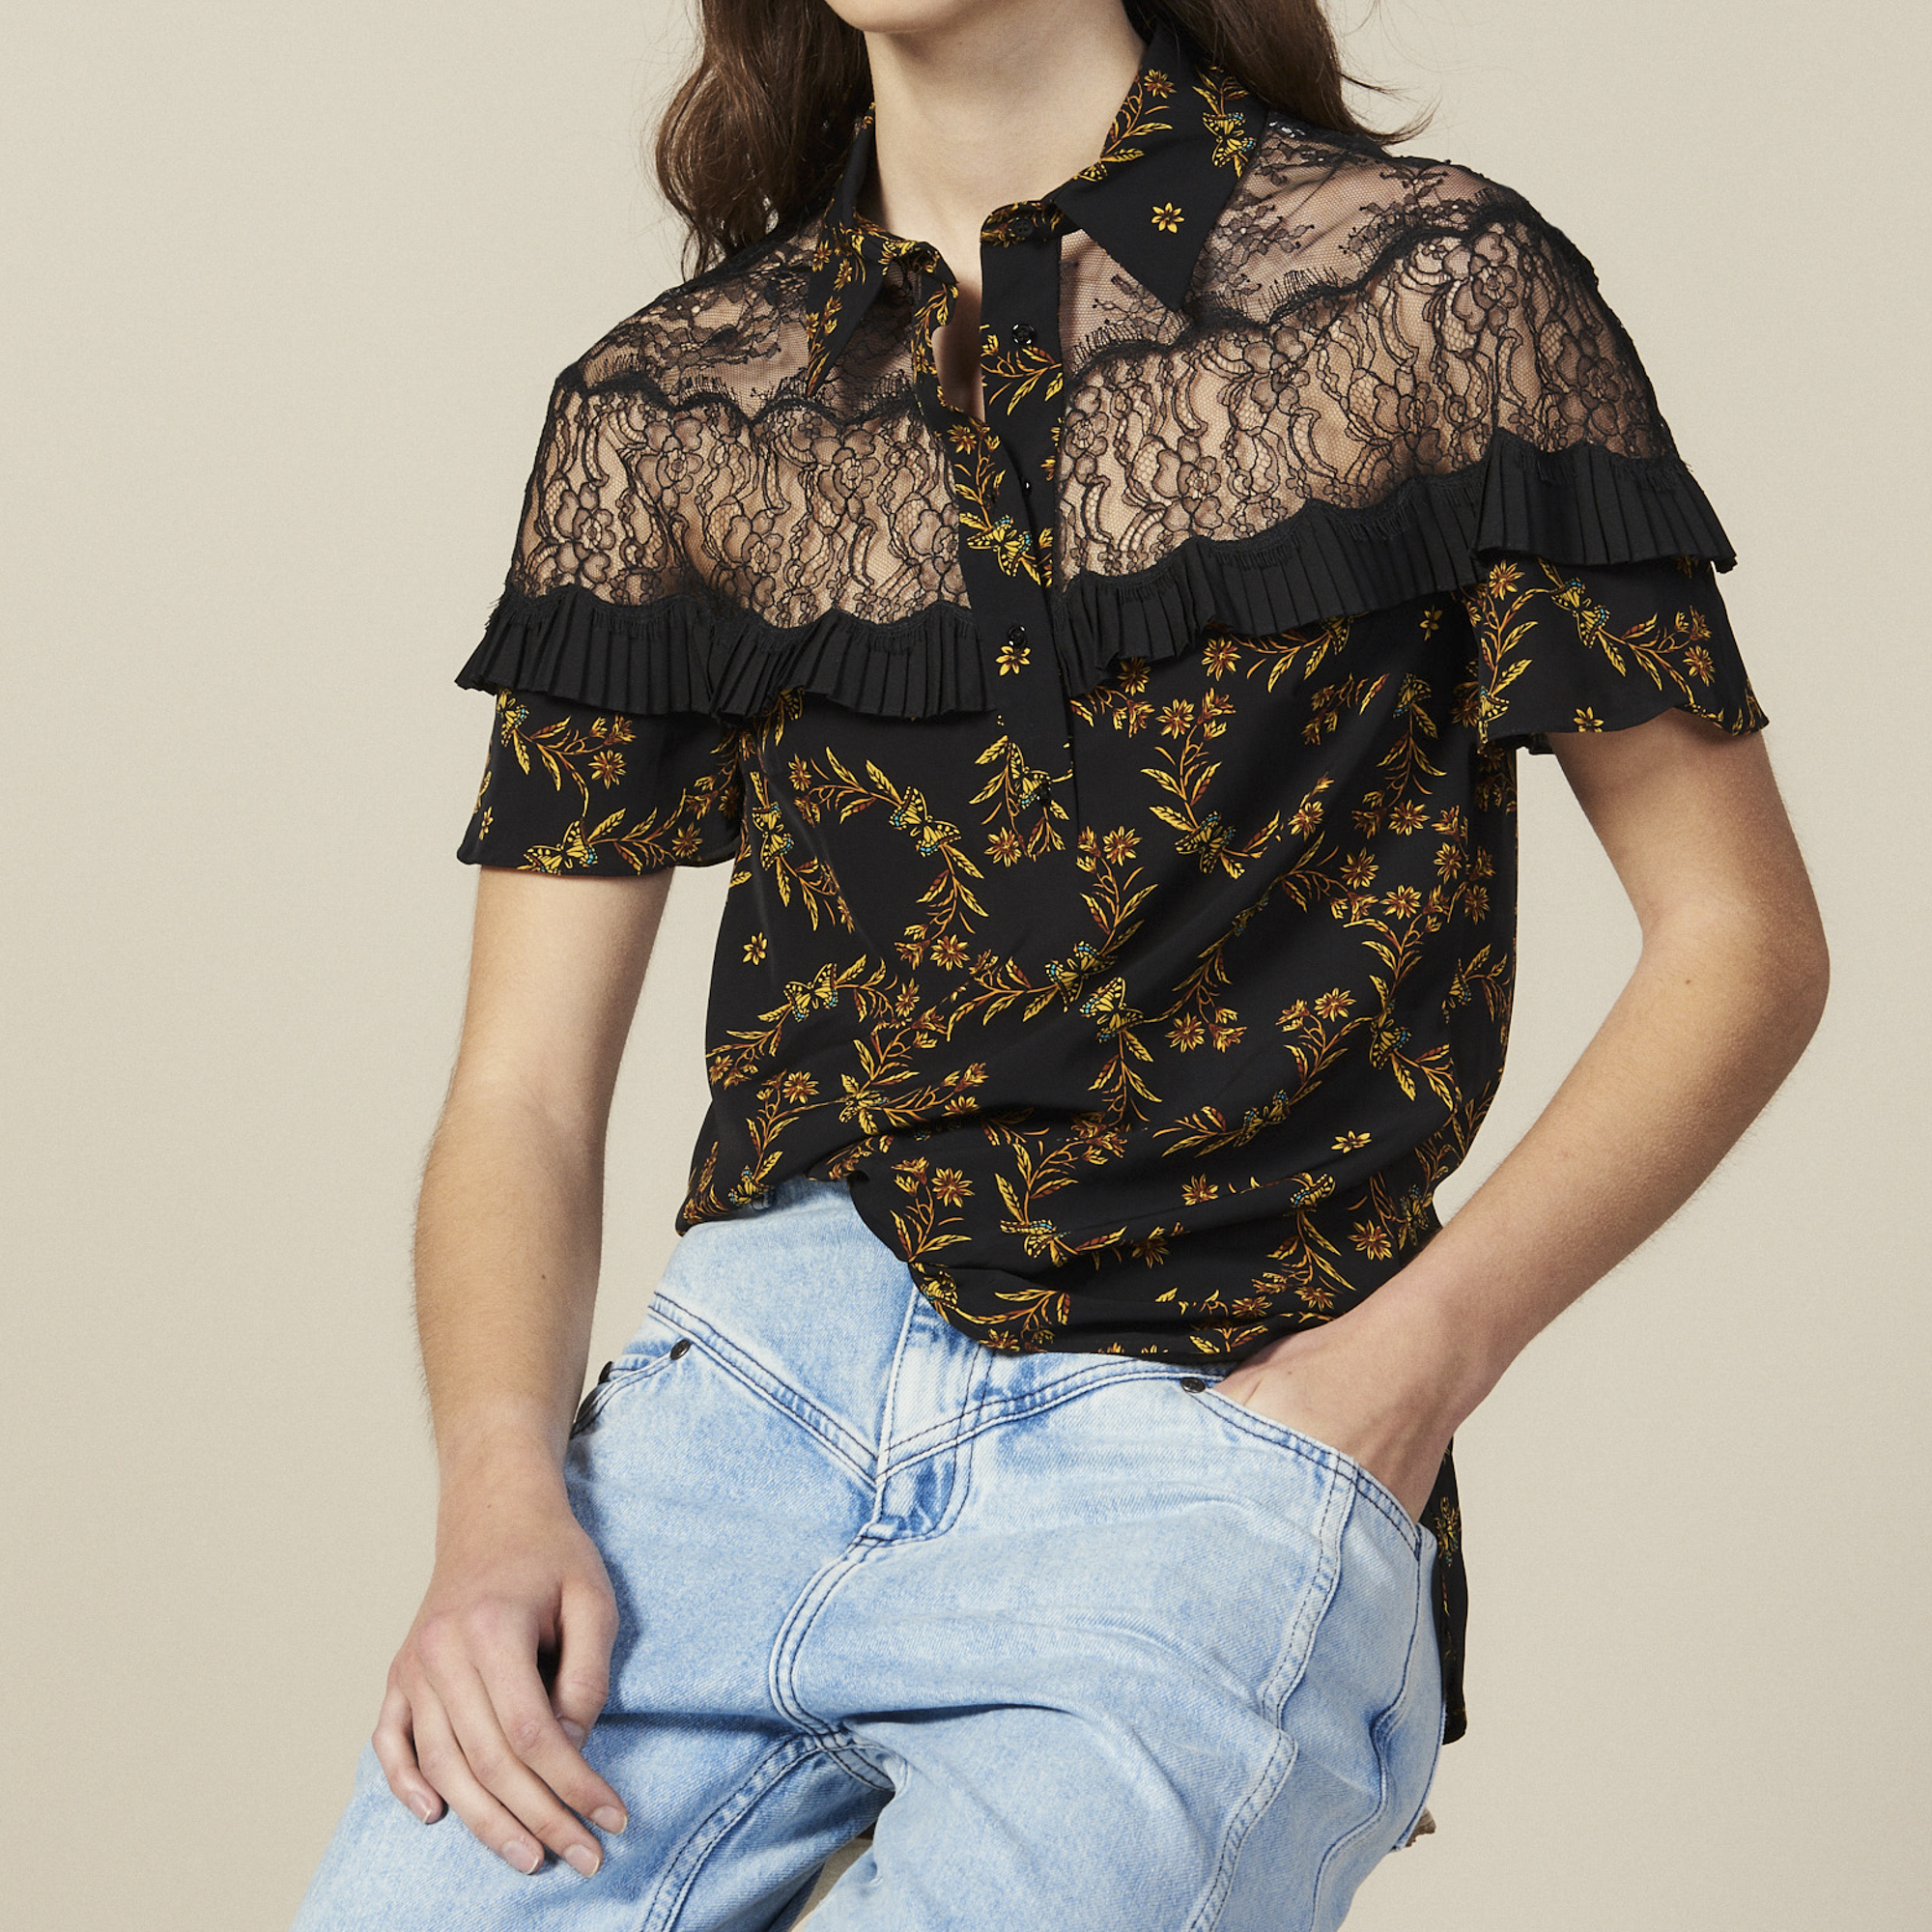 96eed75ce Short-Sleeved Printed Shirt : Tops & Shirts color Black ...